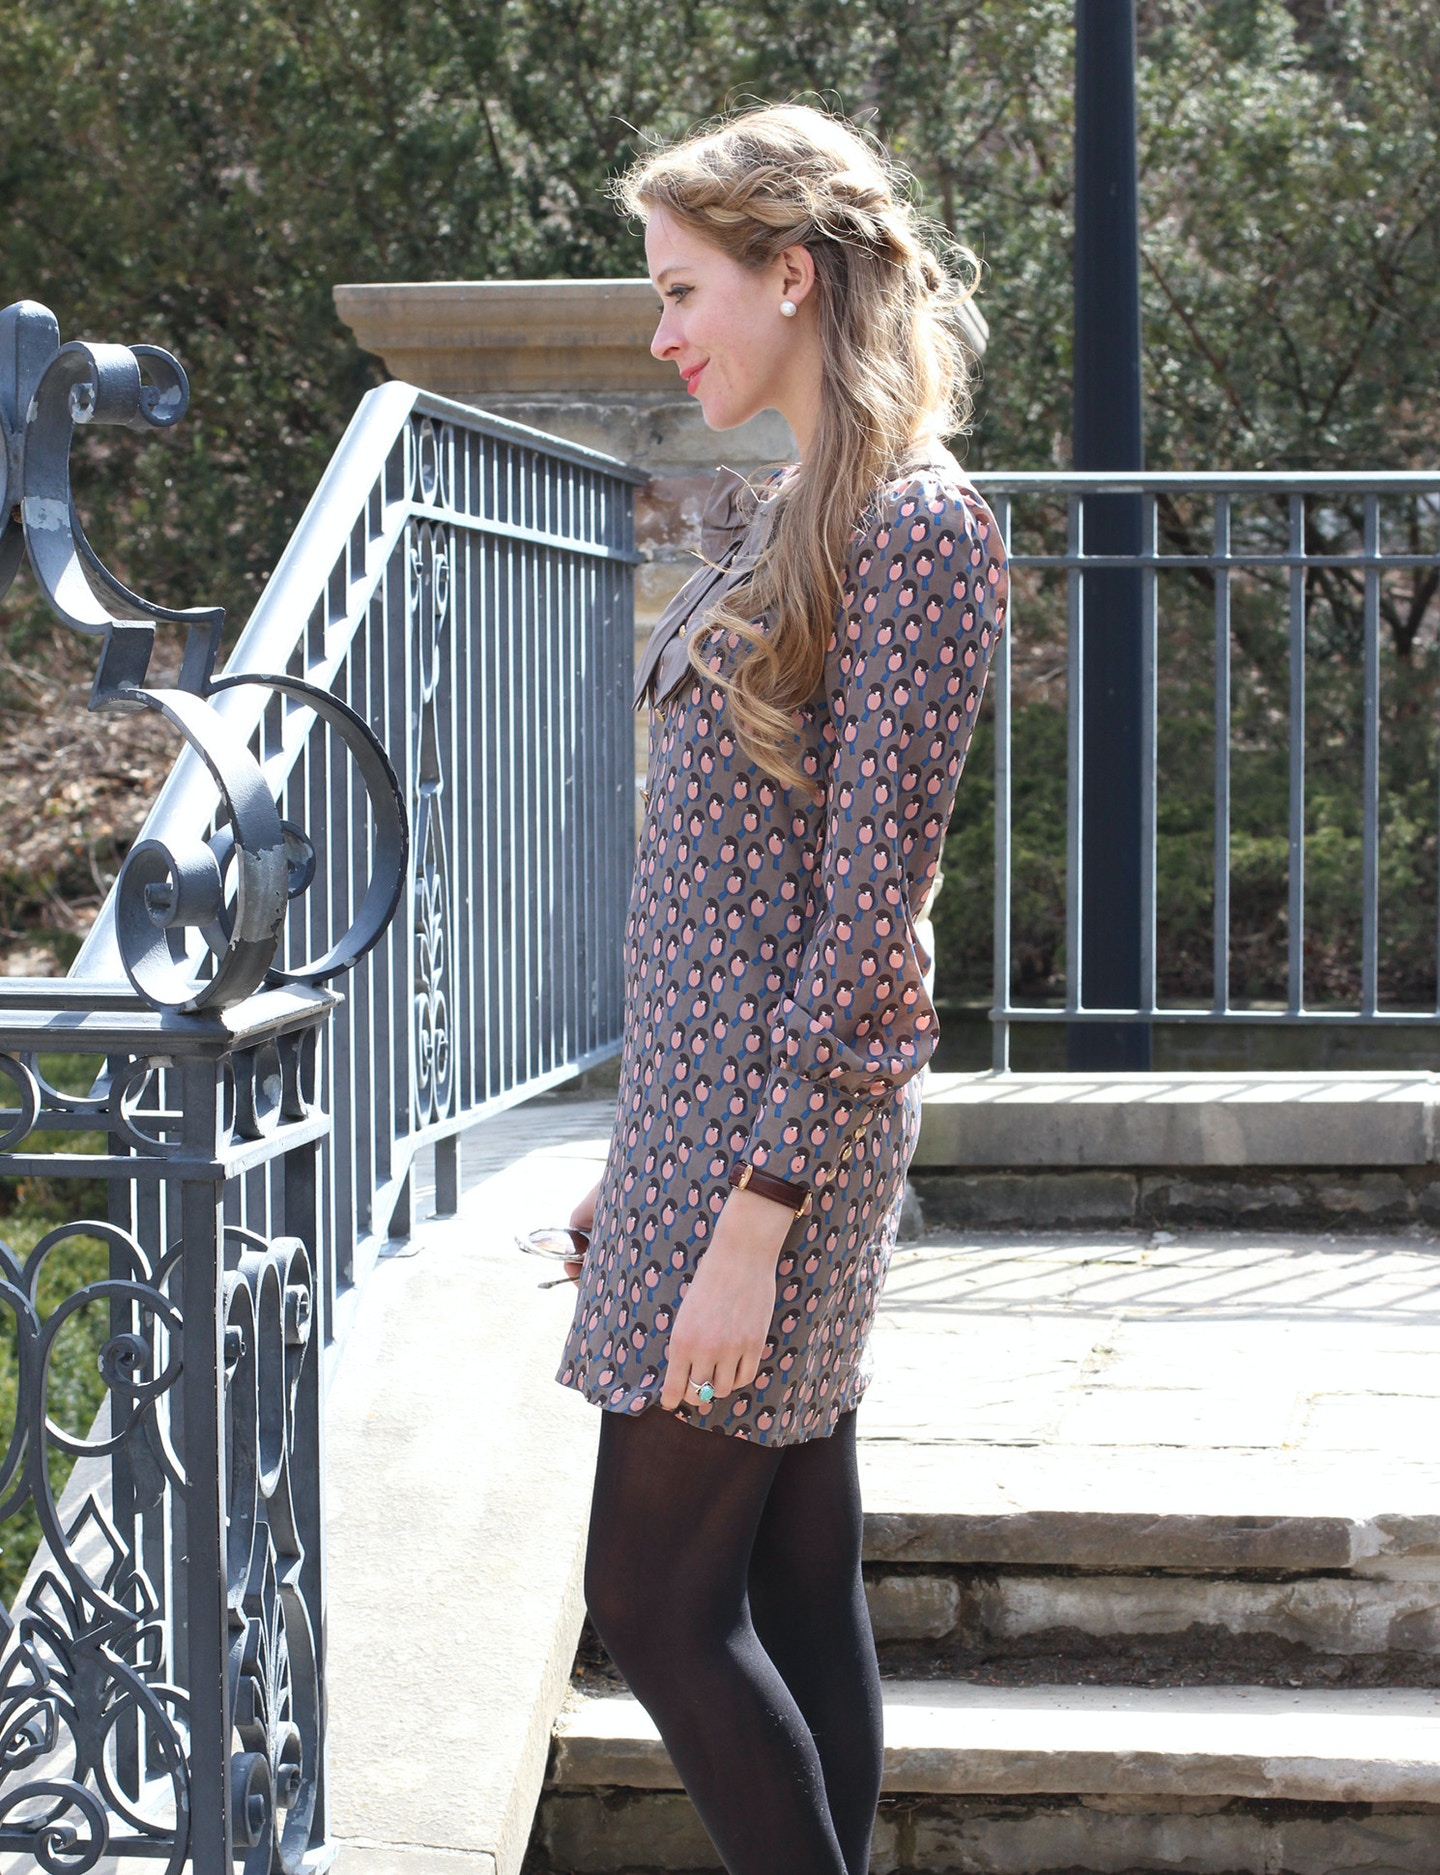 Bird printed spring dress + dutch braid crown tutorial